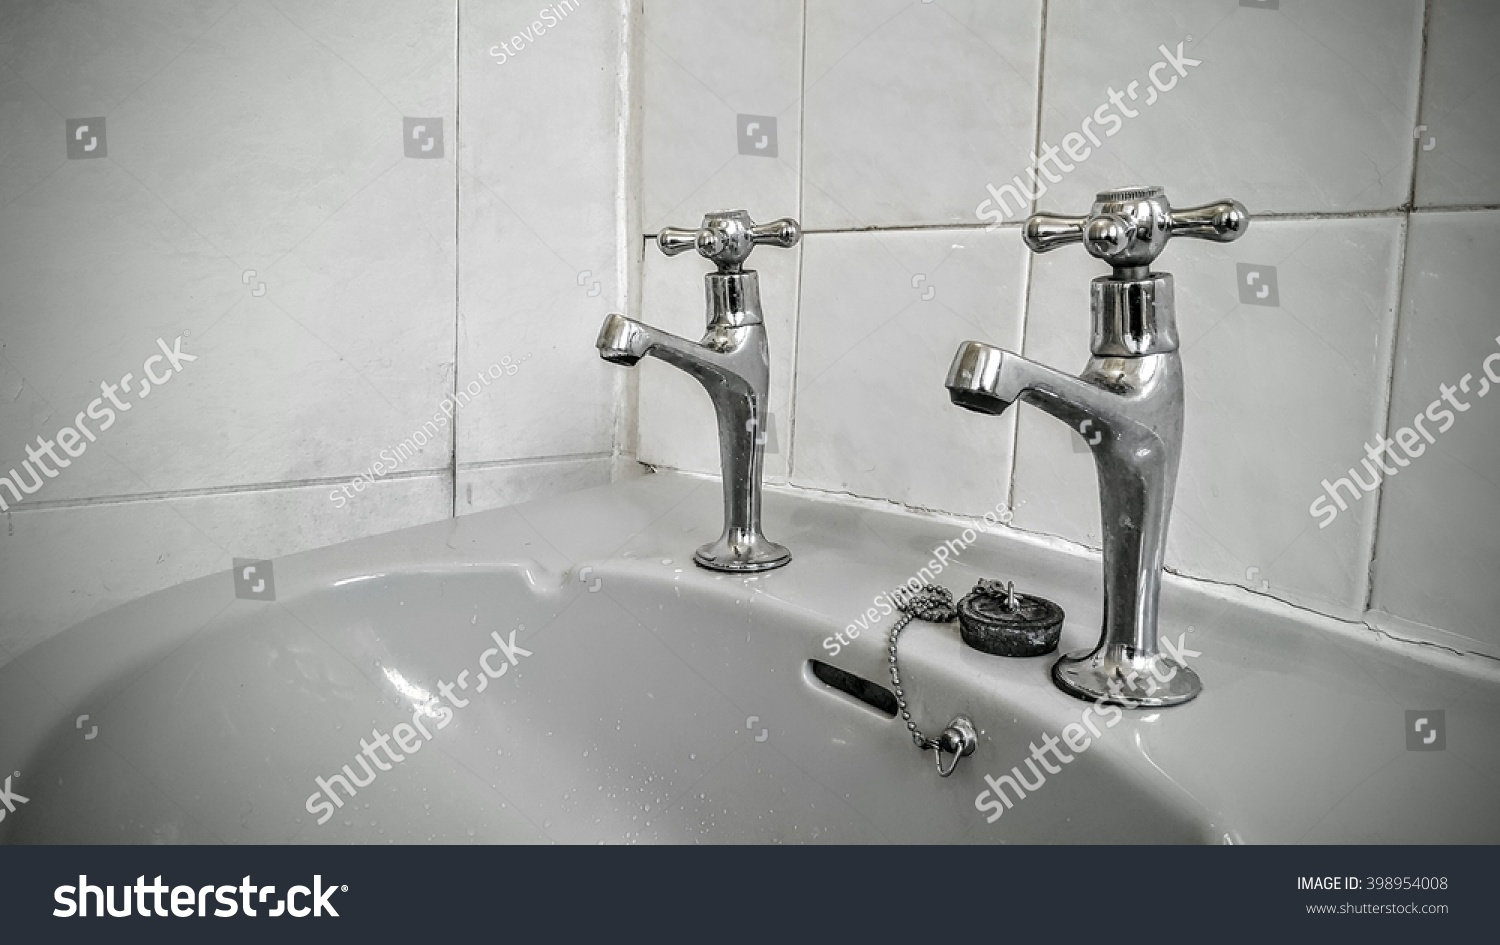 Taps in an old bathroom | EZ Canvas